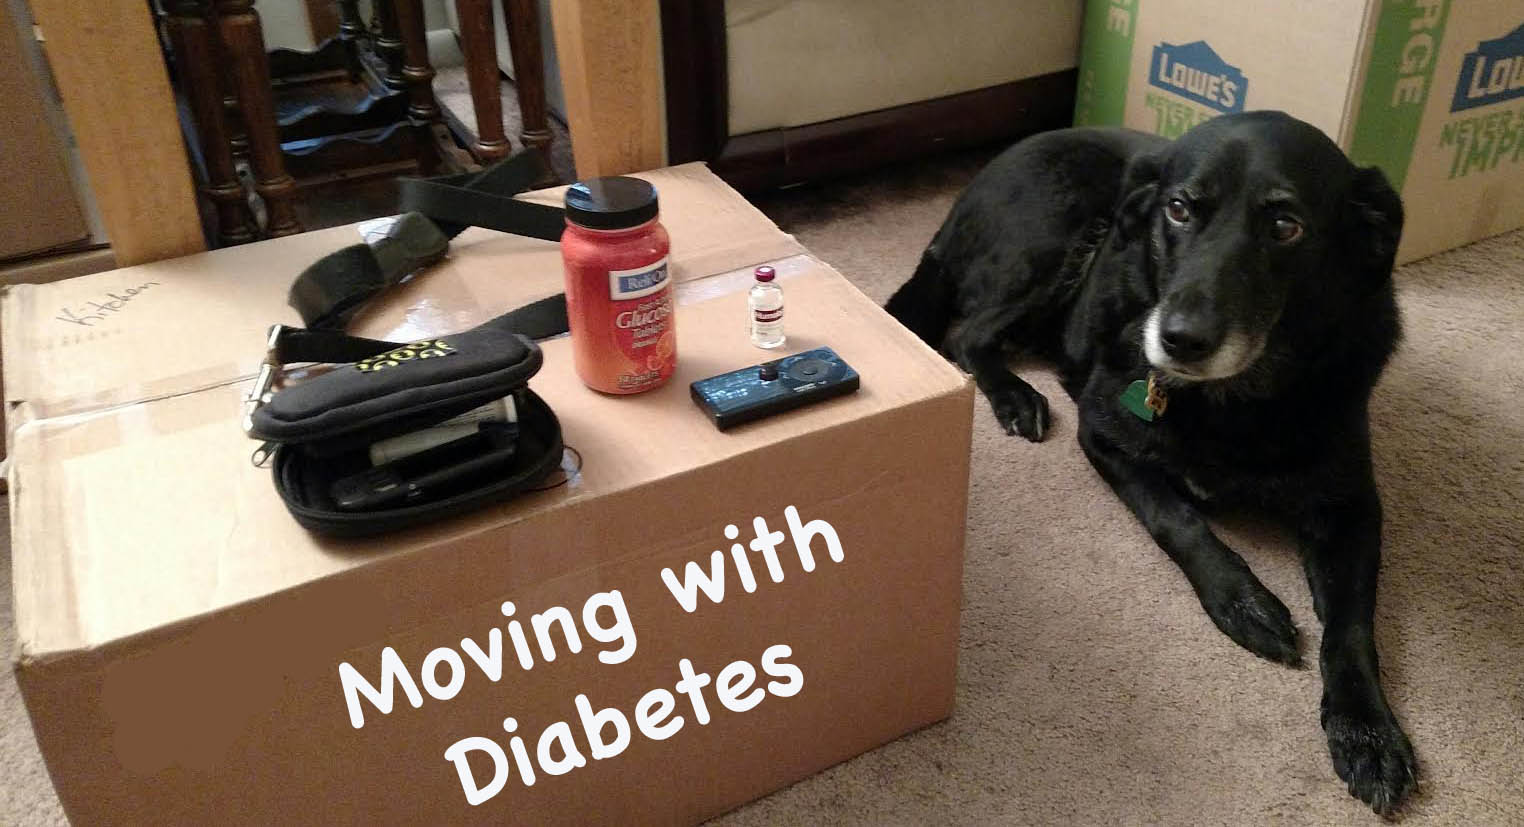 Moving Day with Diabetes